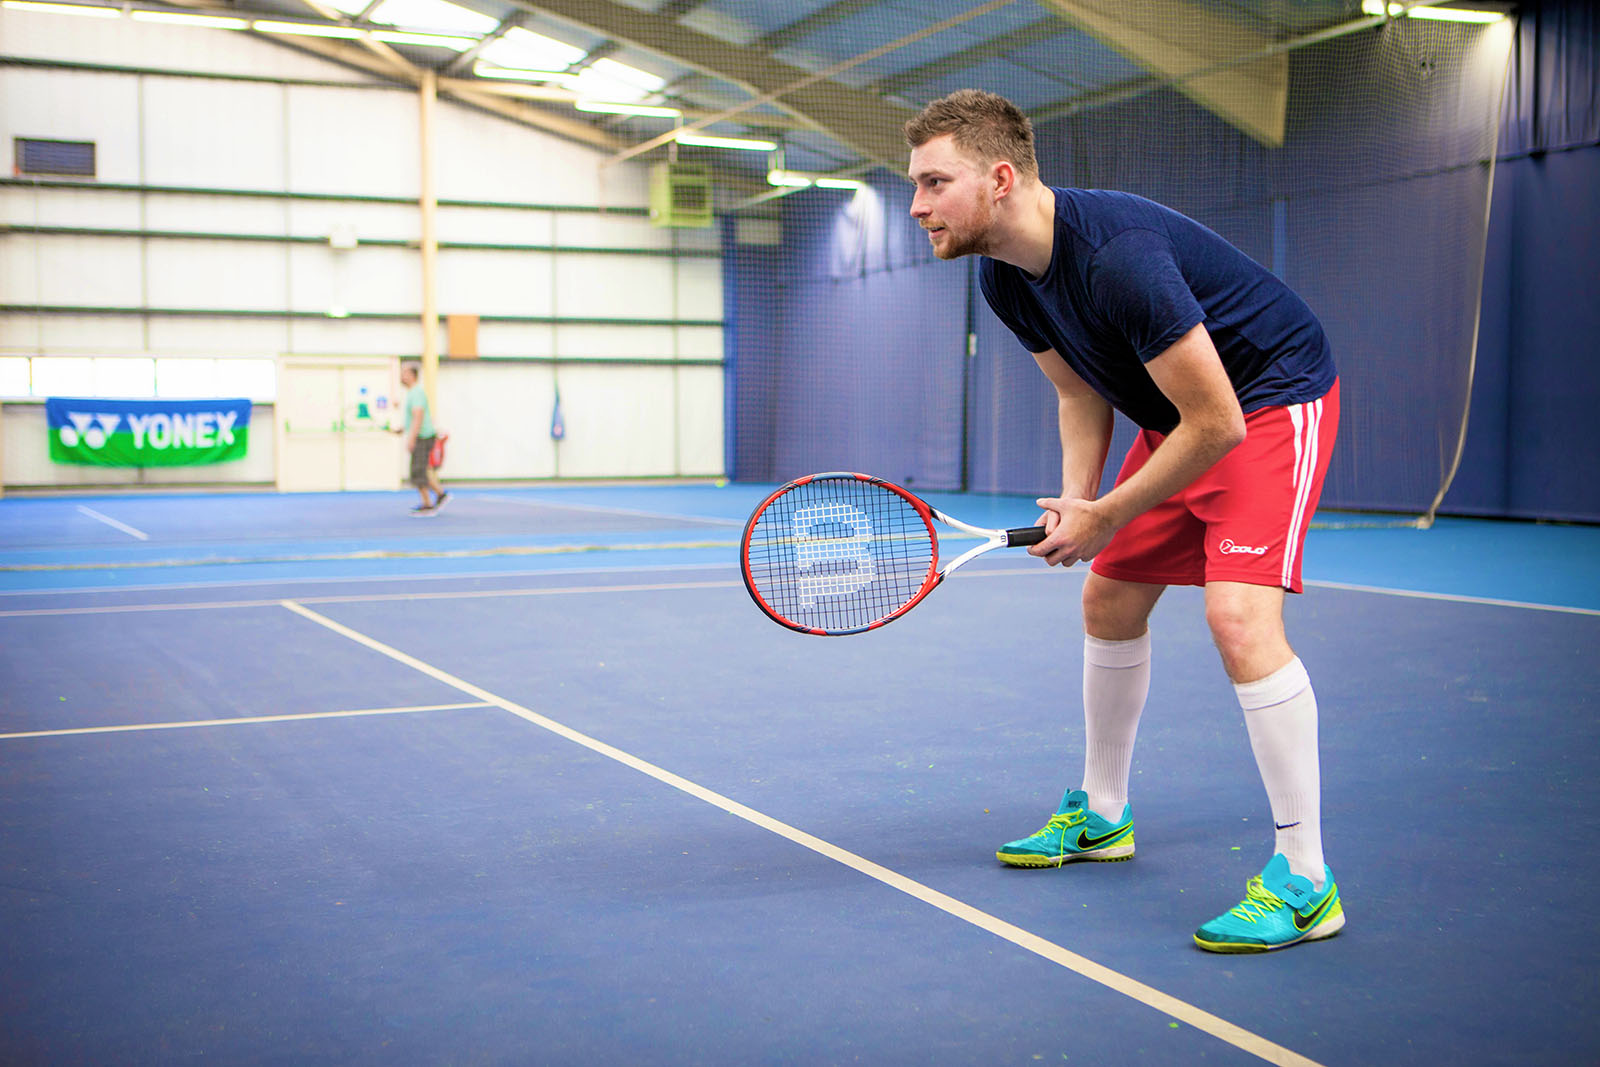 man holding a badminton racket